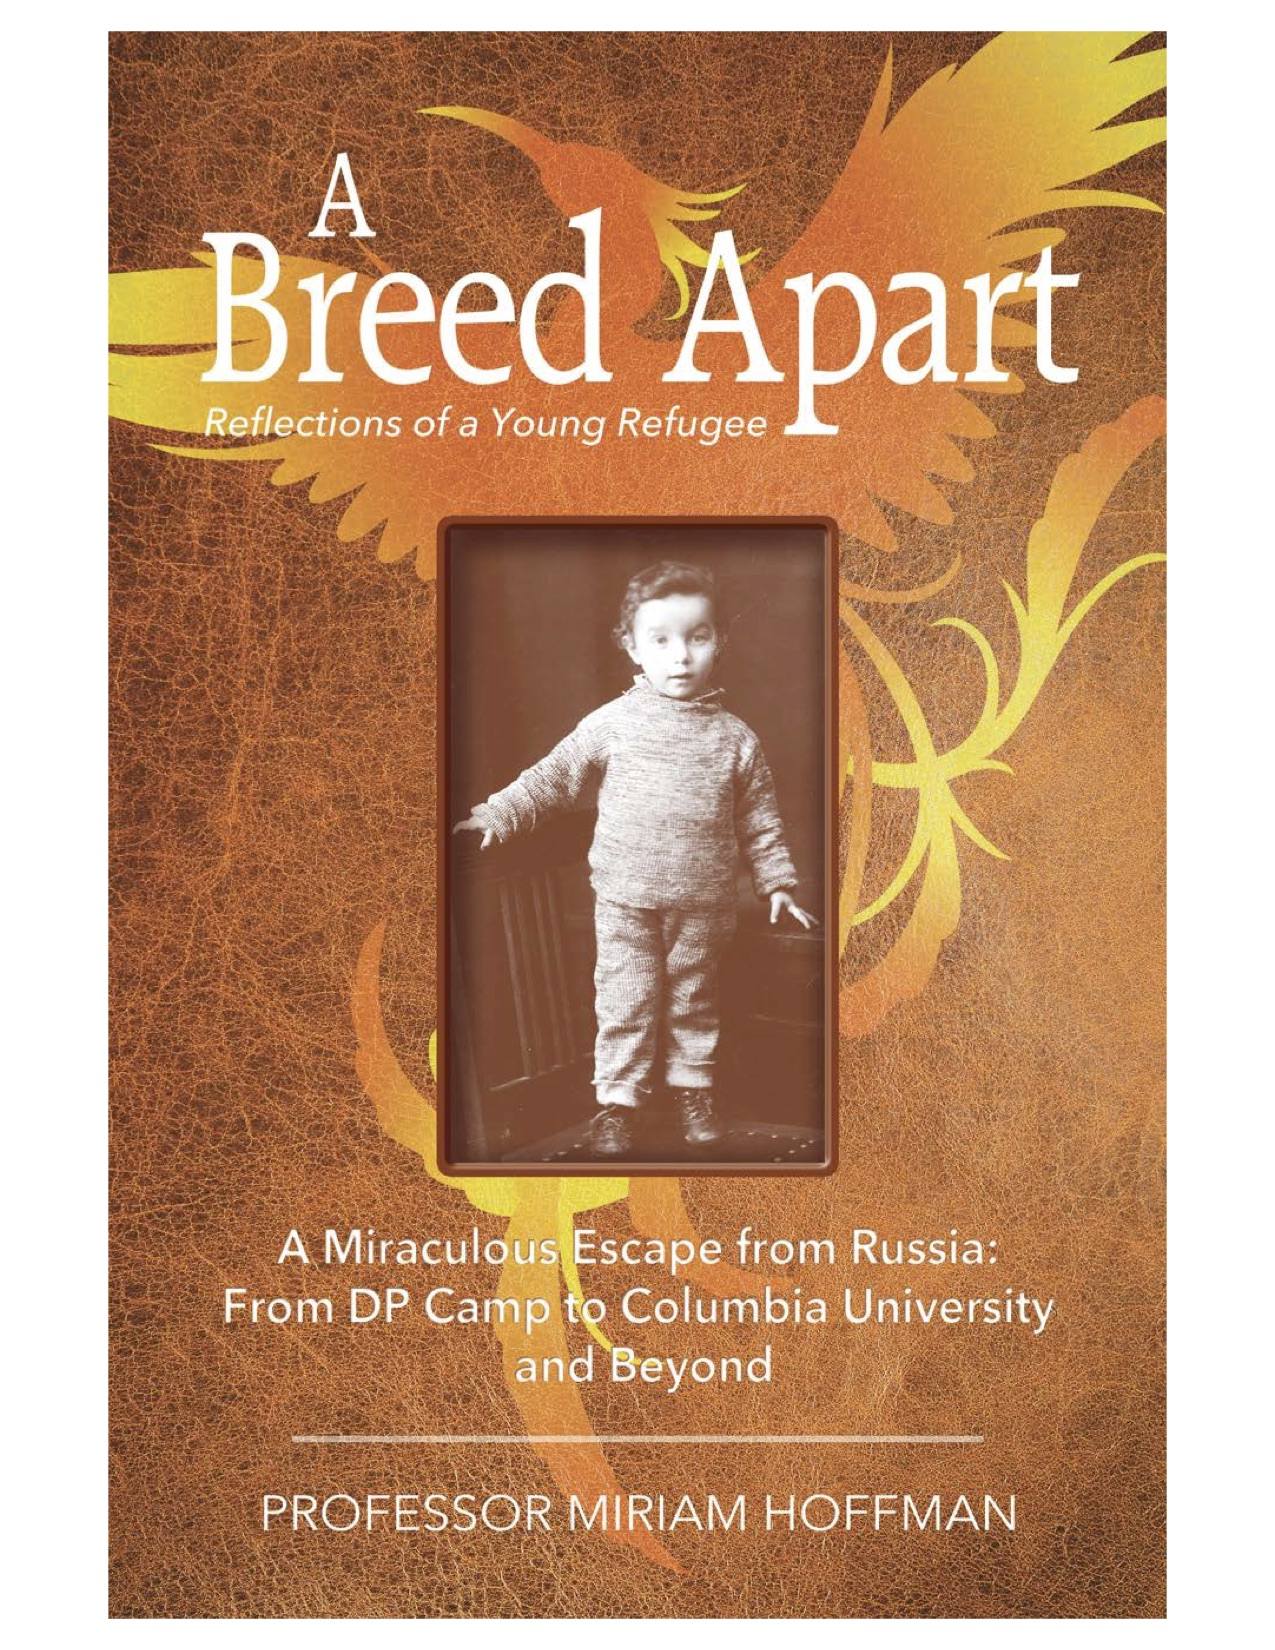 Book Launch: A Breed Apart: Reflections of a Young Refugee by Miriam Hoffman — in conversation w/ Avi Hoffman, feat. Lisa Gutkin & Eleanor Reissa